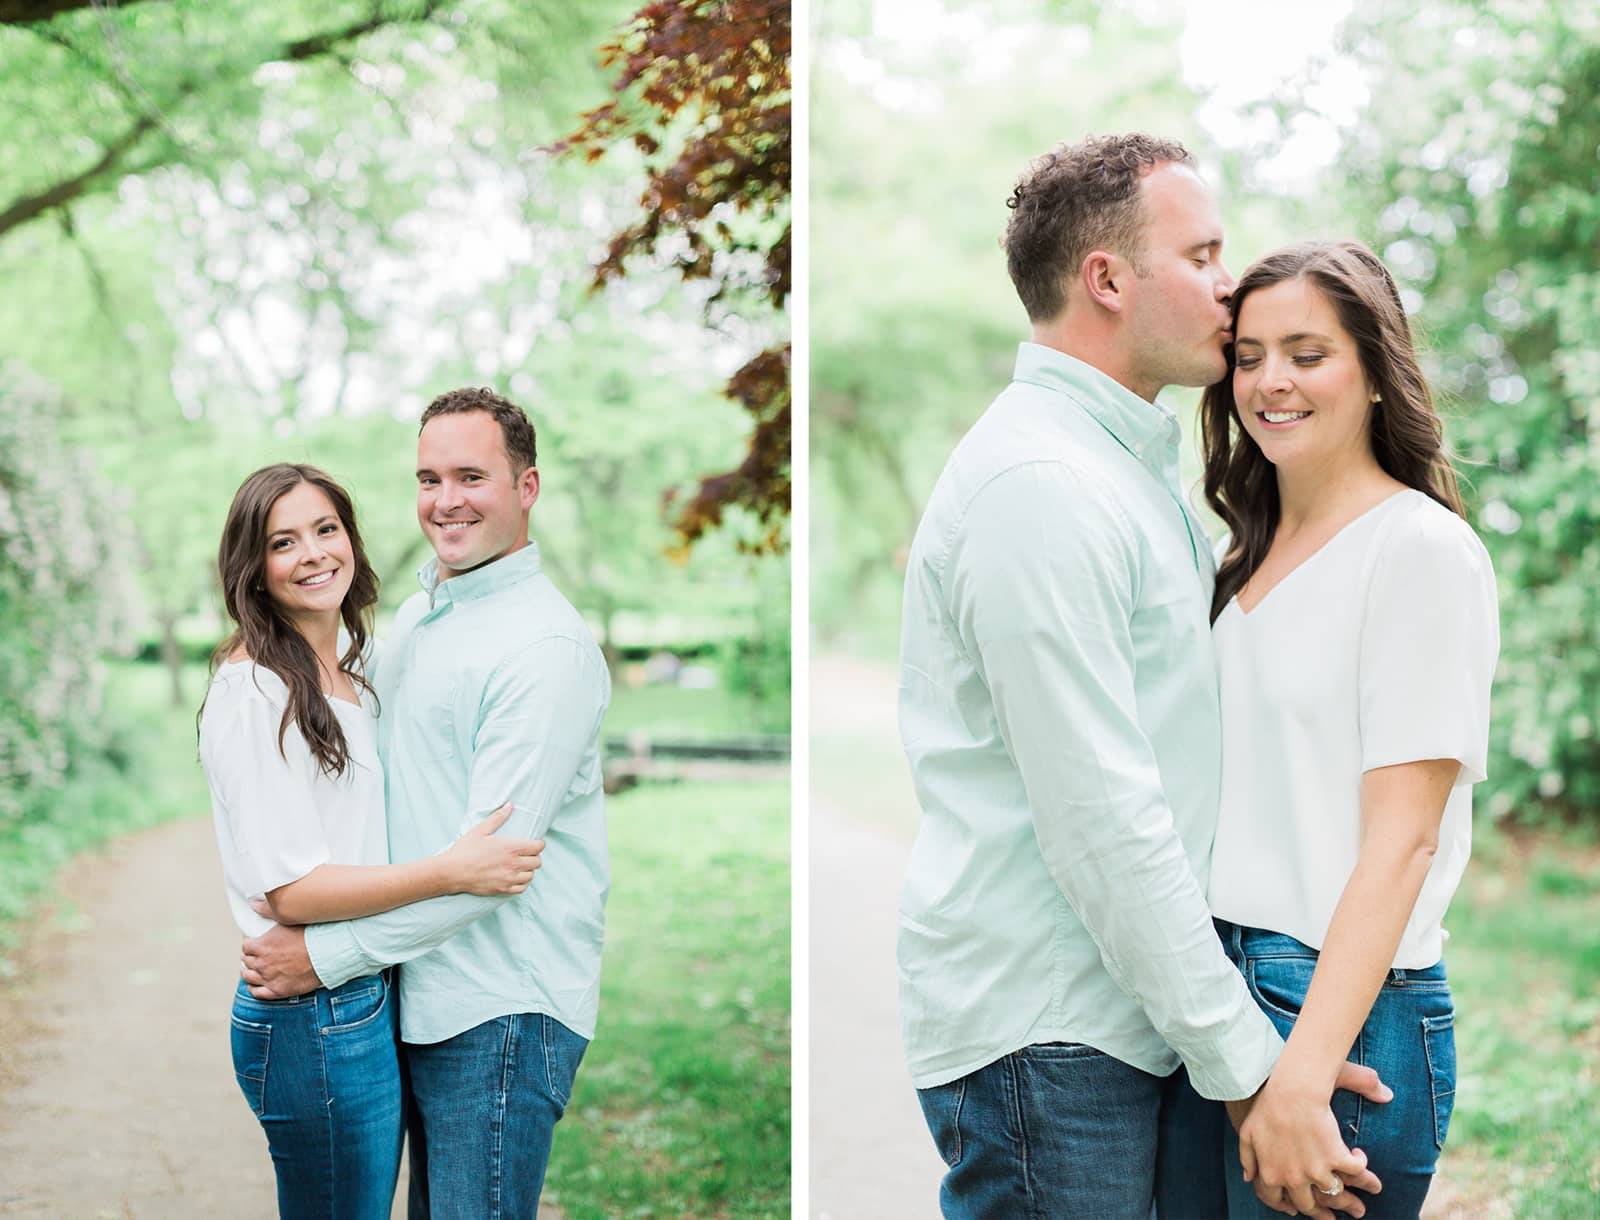 Natural Engagement Session at High Park: Kate + Kyle